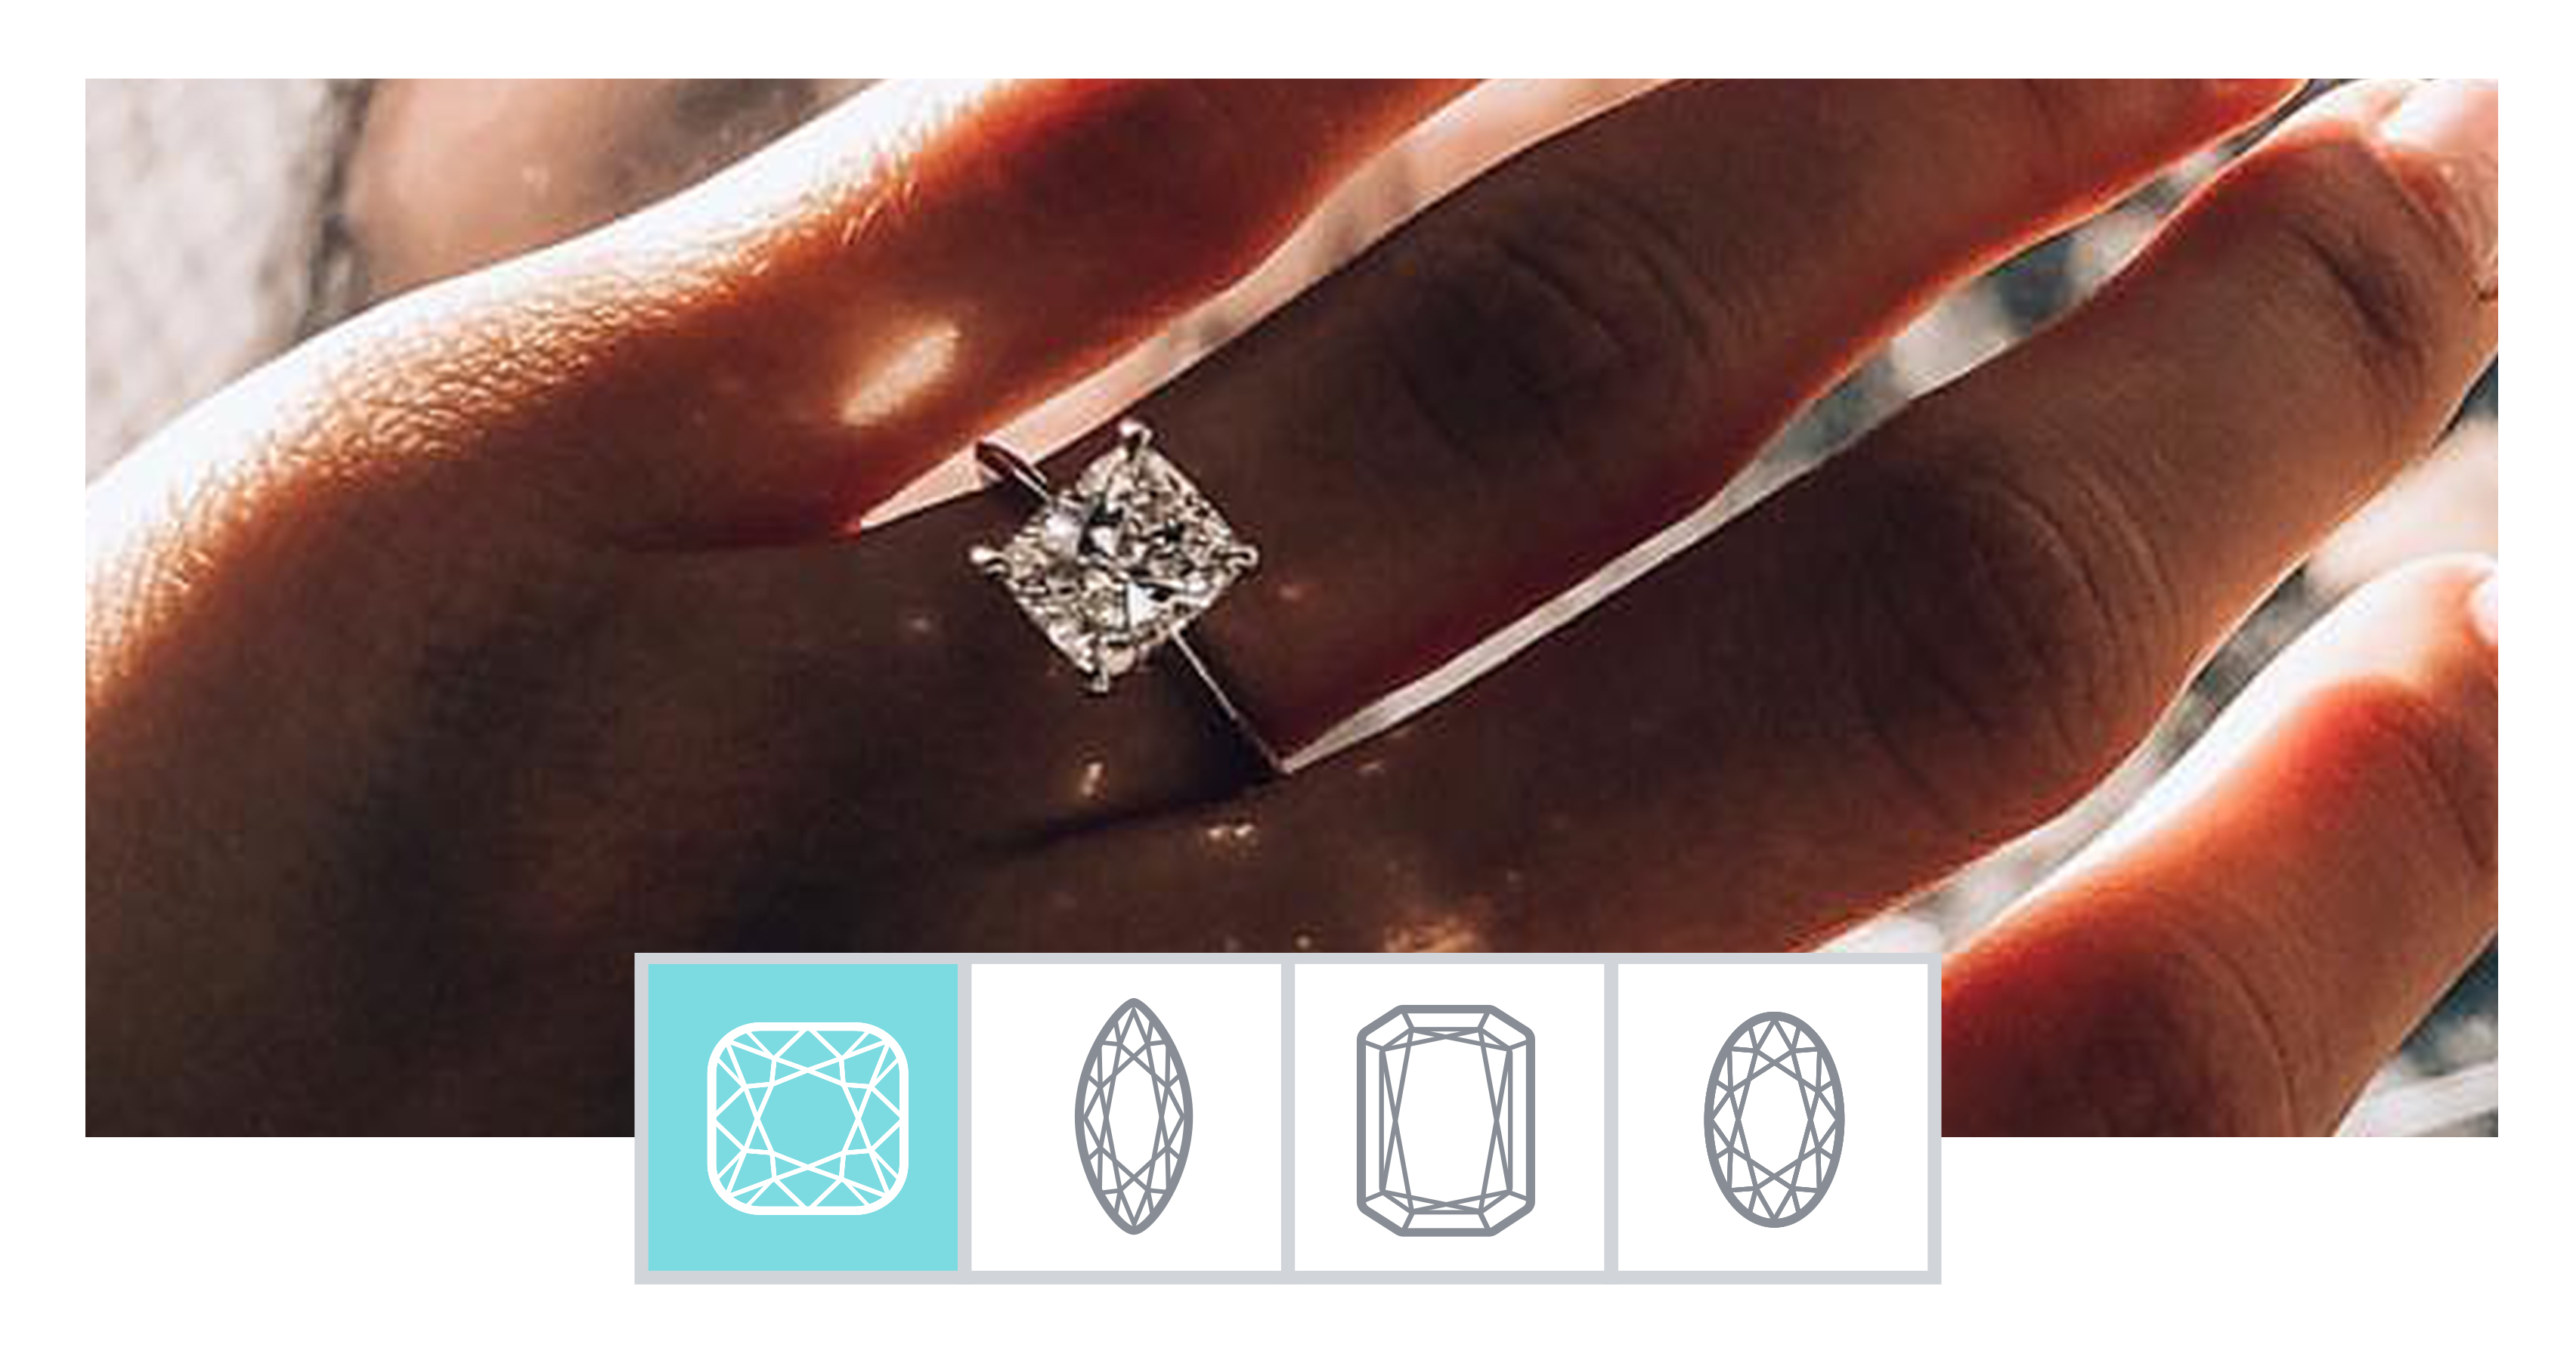 Engagement Ring Photos On Hands With Carat Size Amp More